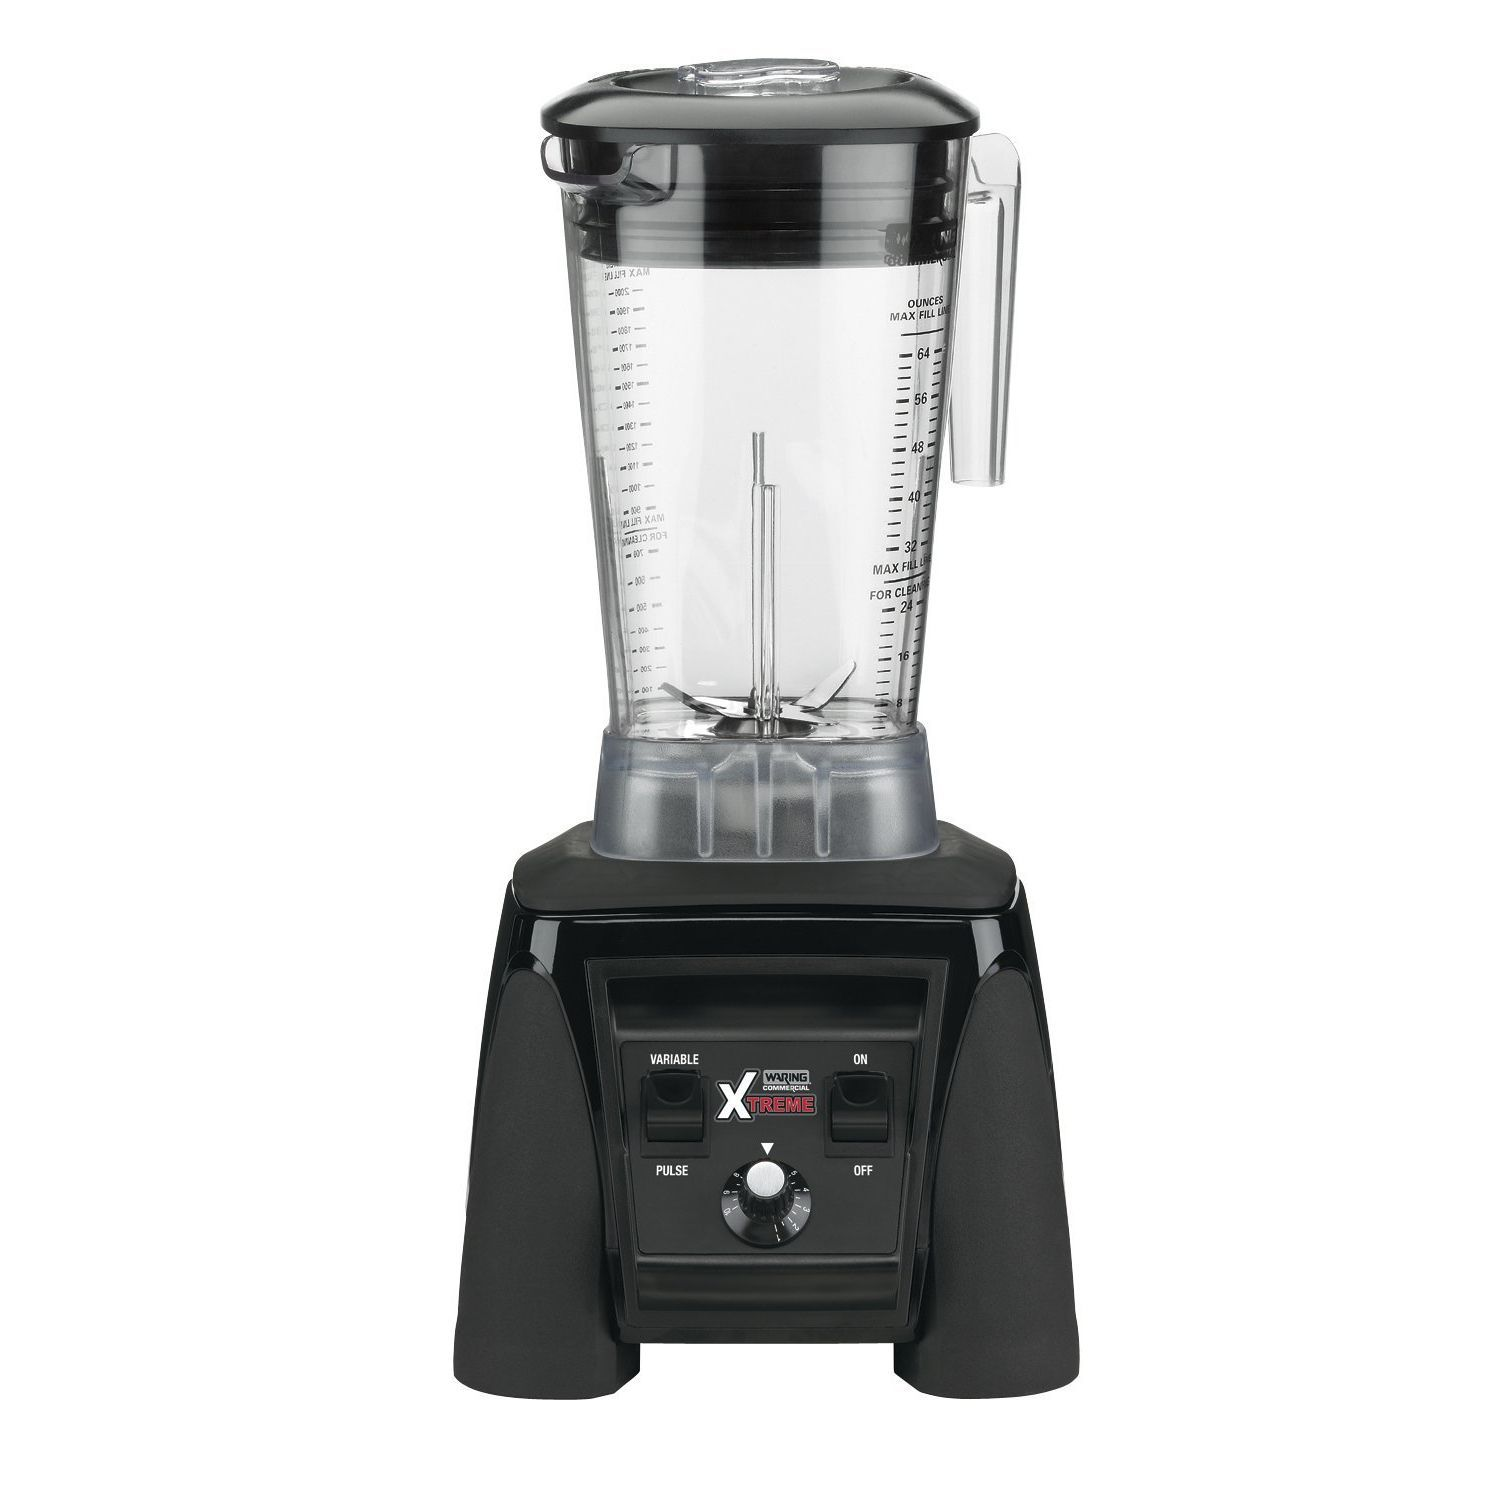 Waring Commercial MX1200XTX Xtreme Hi-Power Variable-Speed Food Blender + Raptor Copolyester Container, 64-Ounce